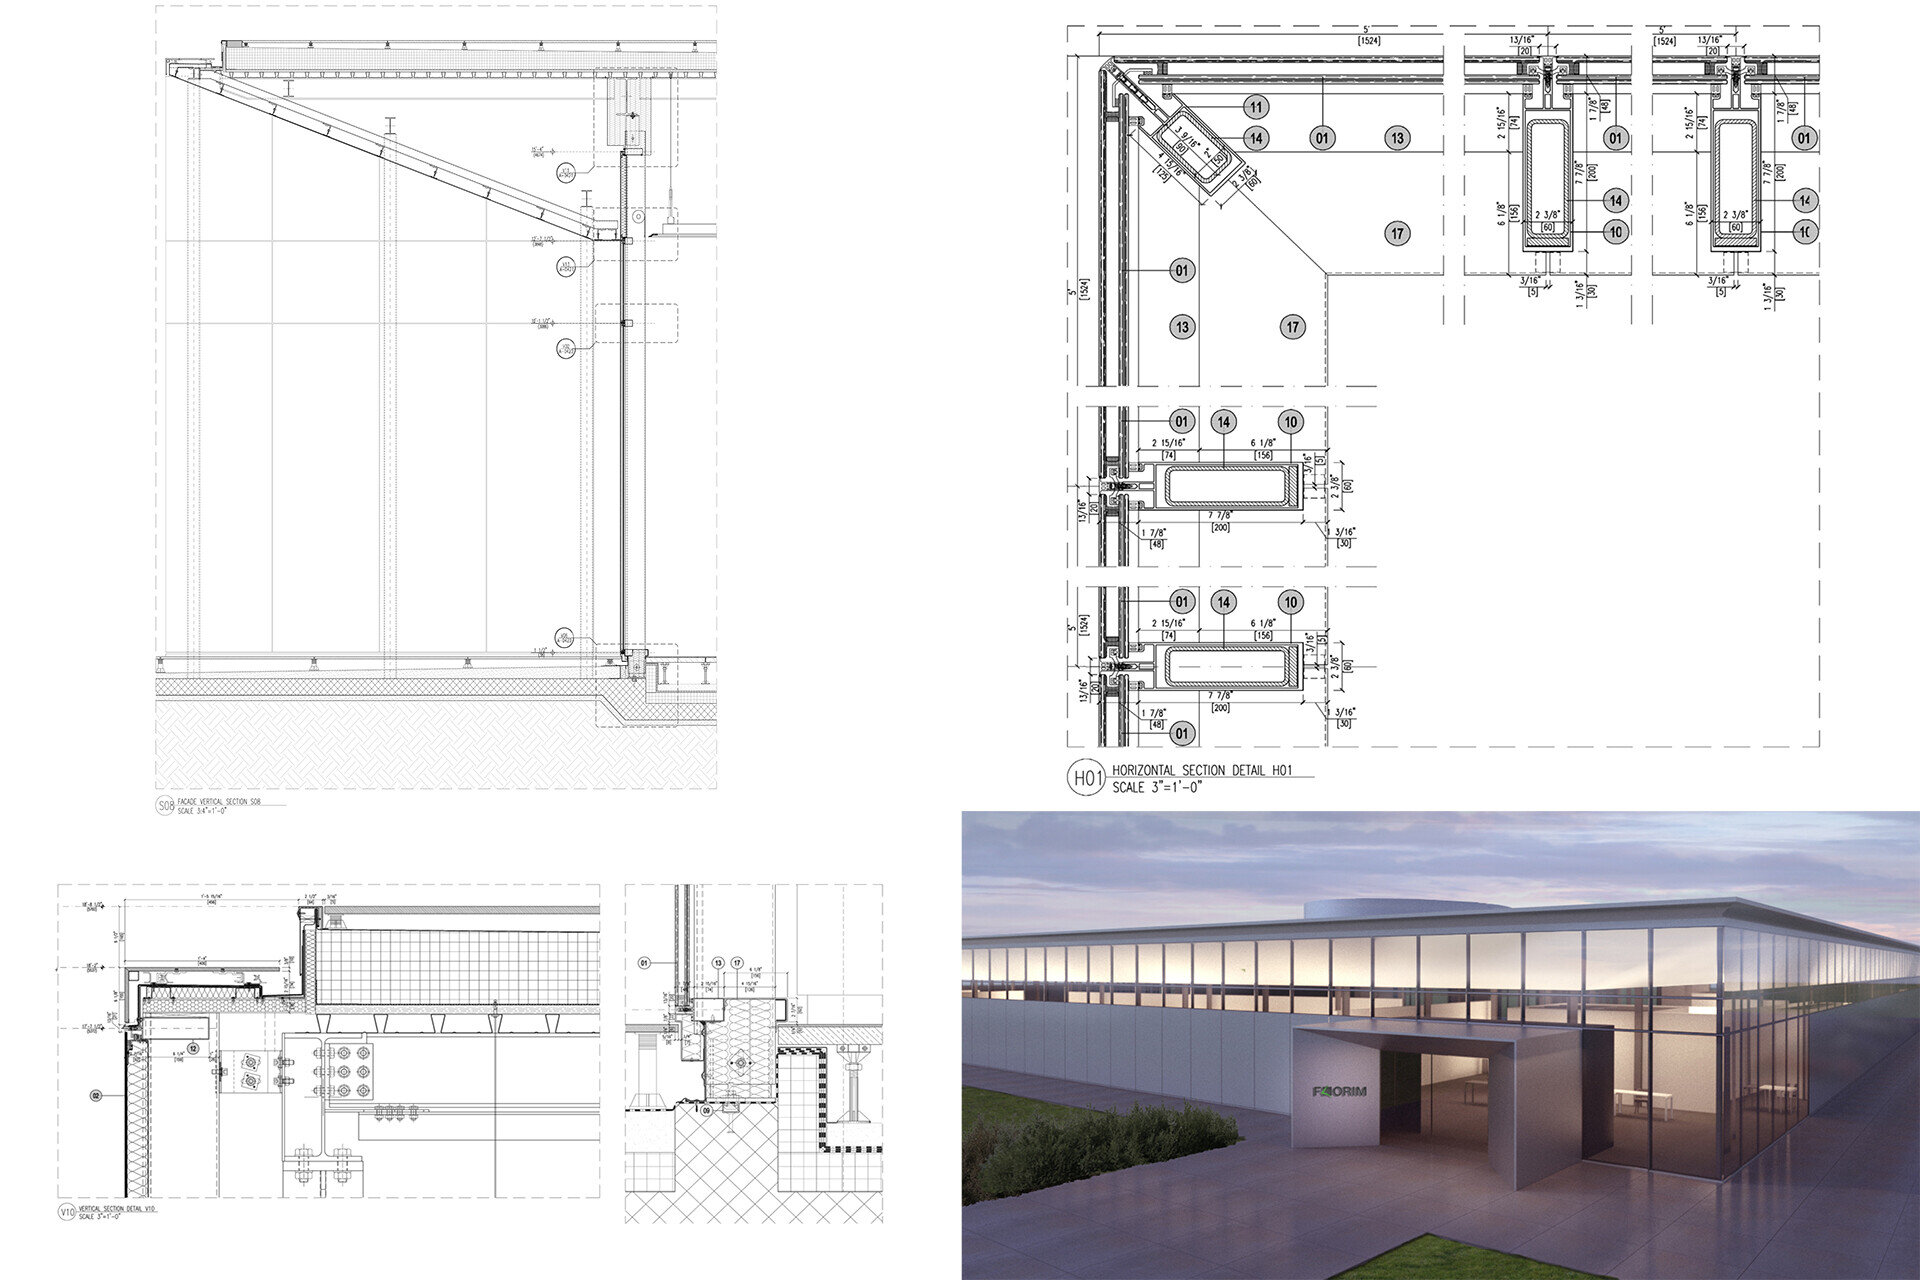 Facade design engineering by SCE Project FLORIM Dettagli